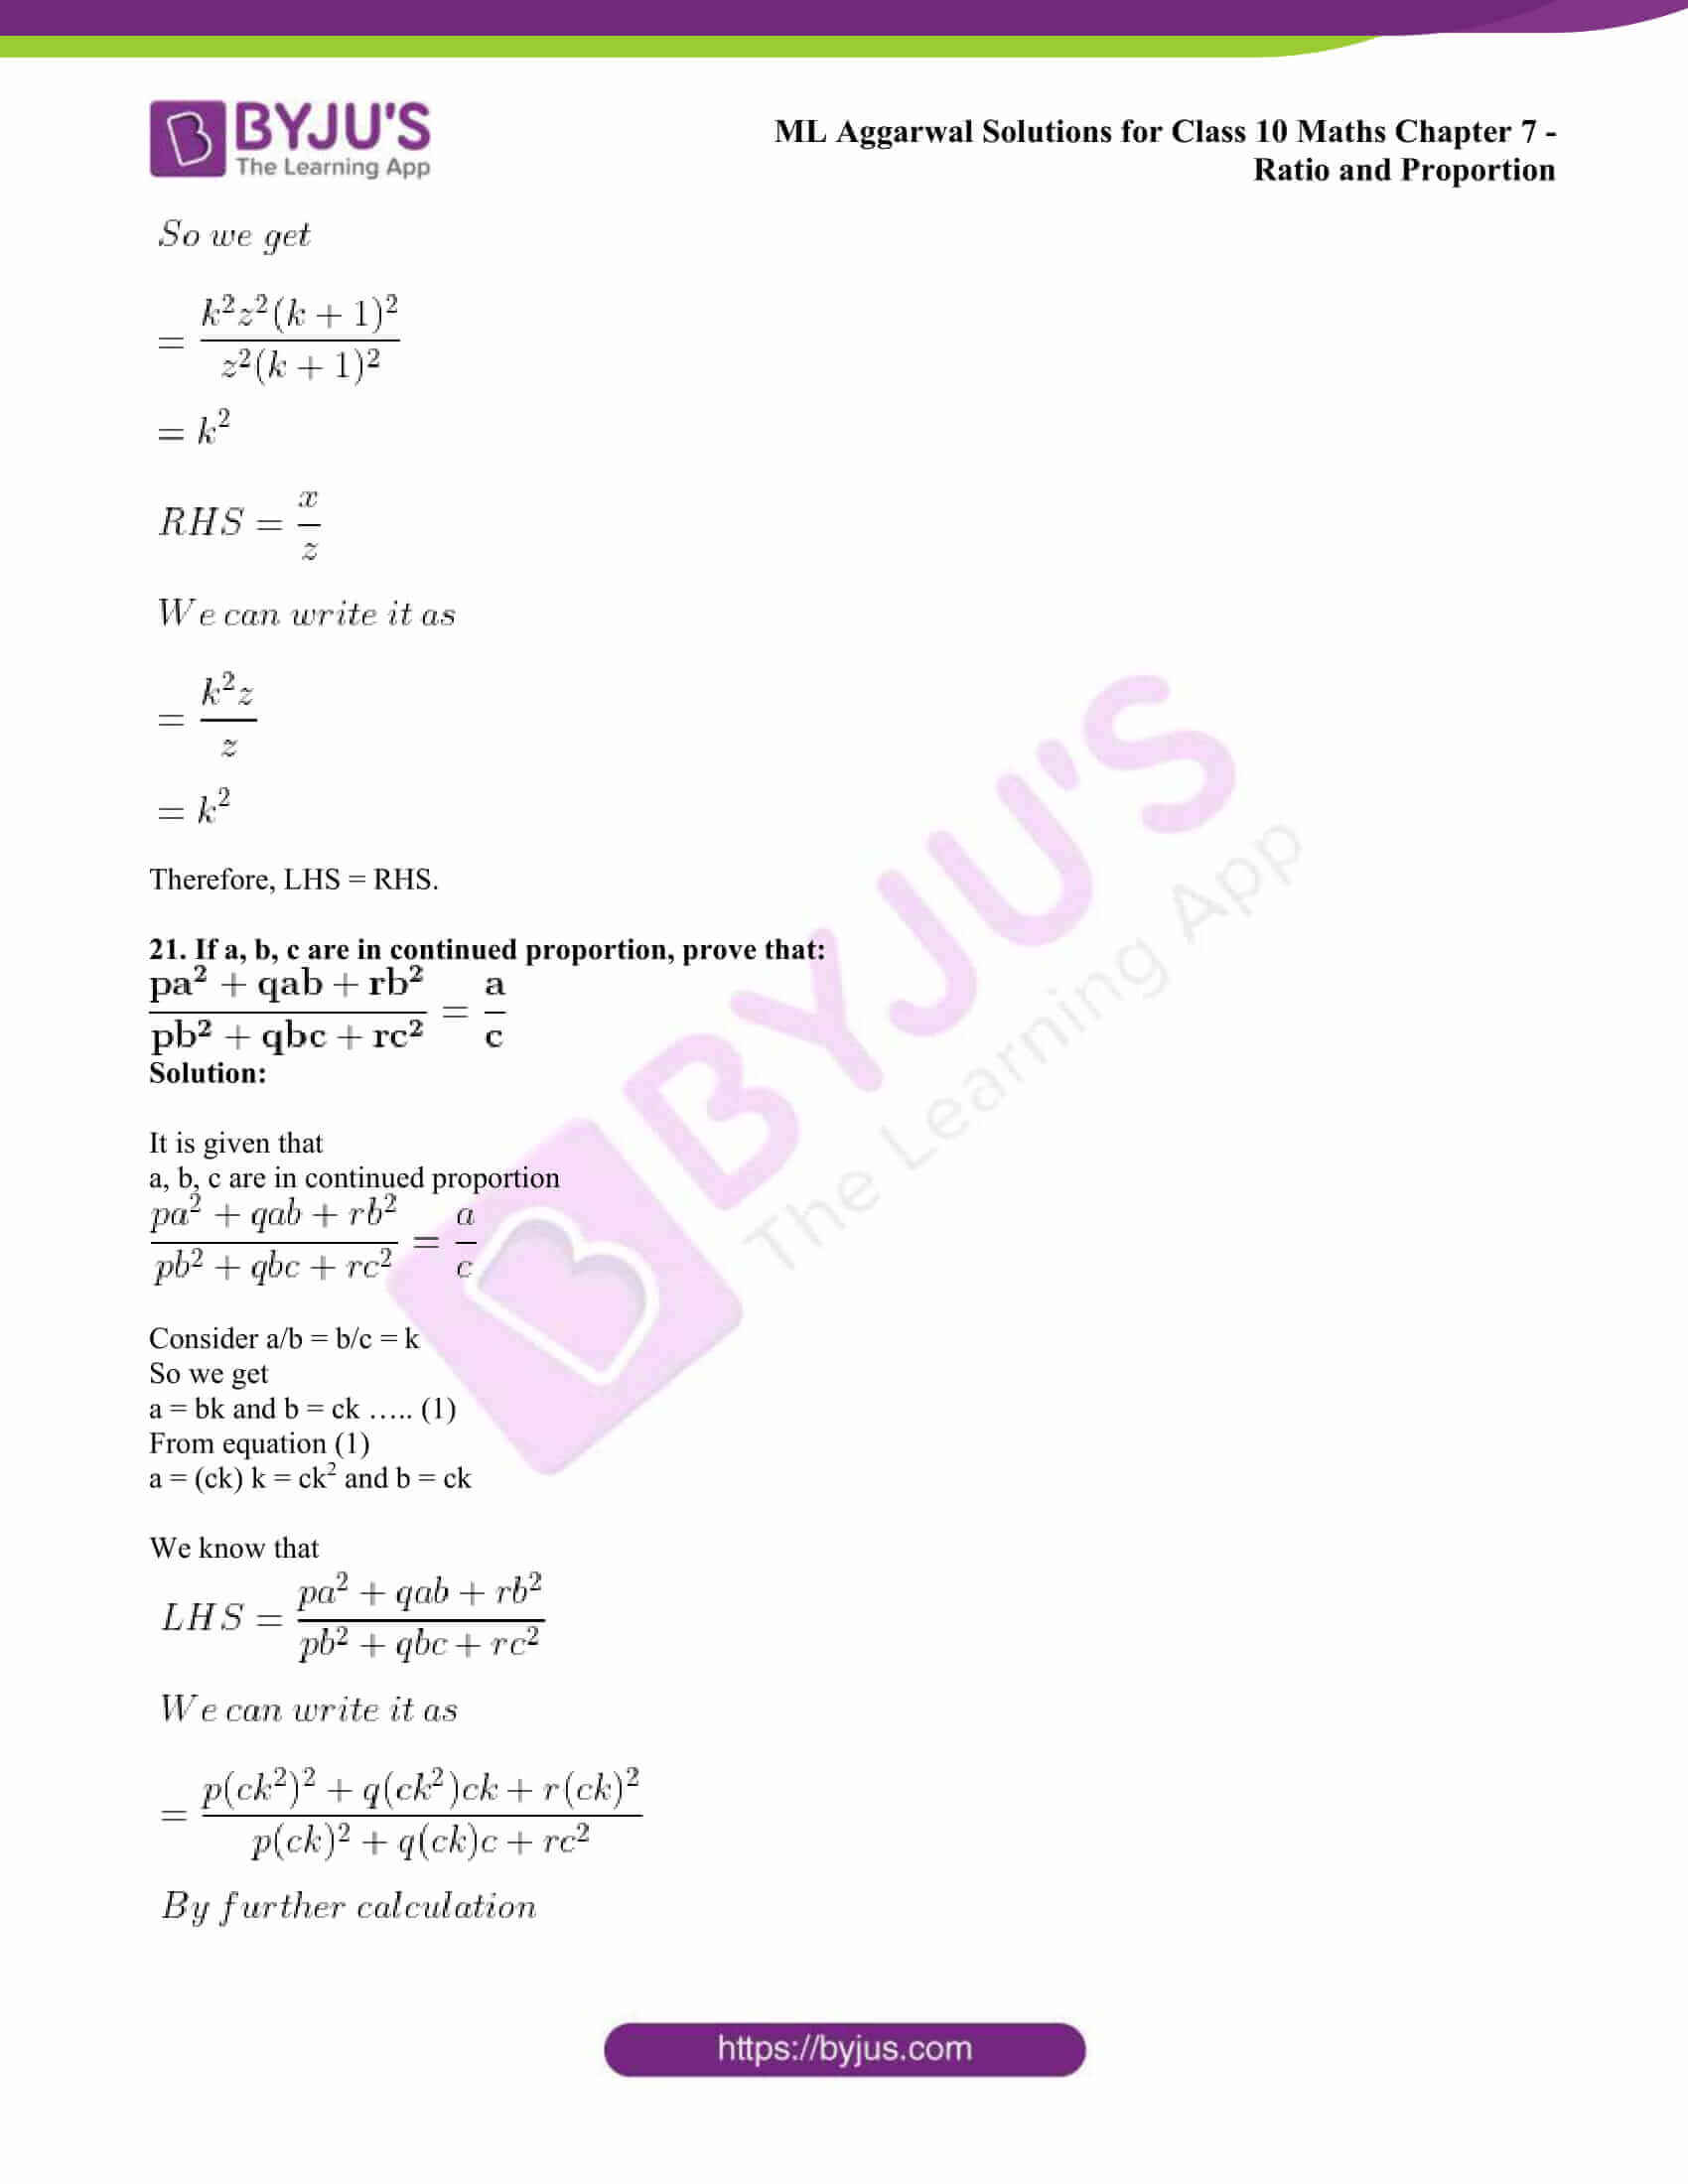 ml aggarwal solutions class 10 maths chapter 7 36